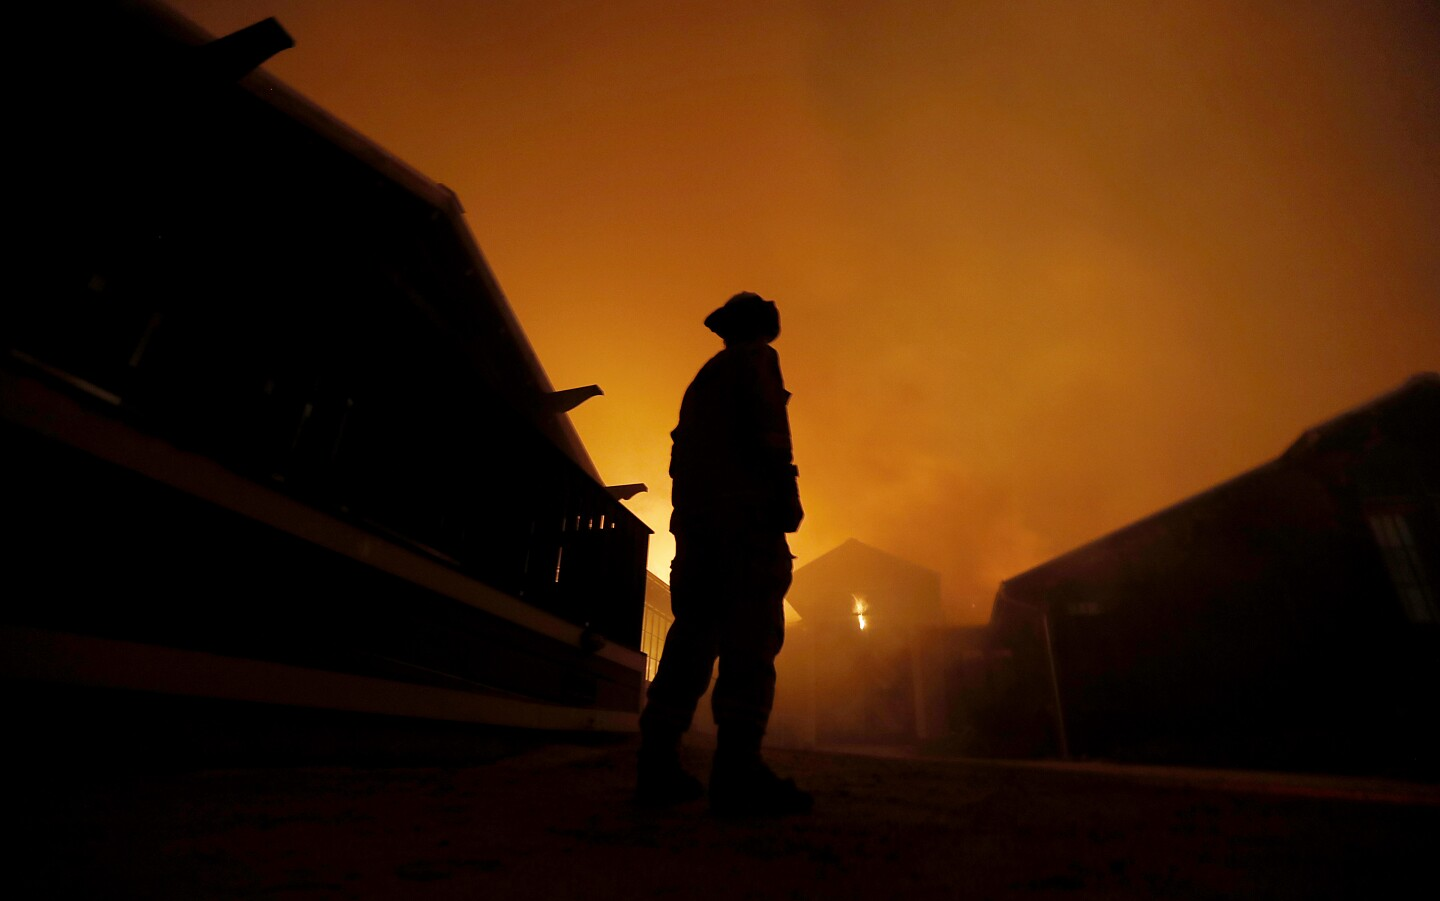 A firefighter looks on as trhe Soda Ranch winery along State Highway 128 near Healdsburg is consumed by the Kincade fire early Sunday morning, Oct. 27, 2019.